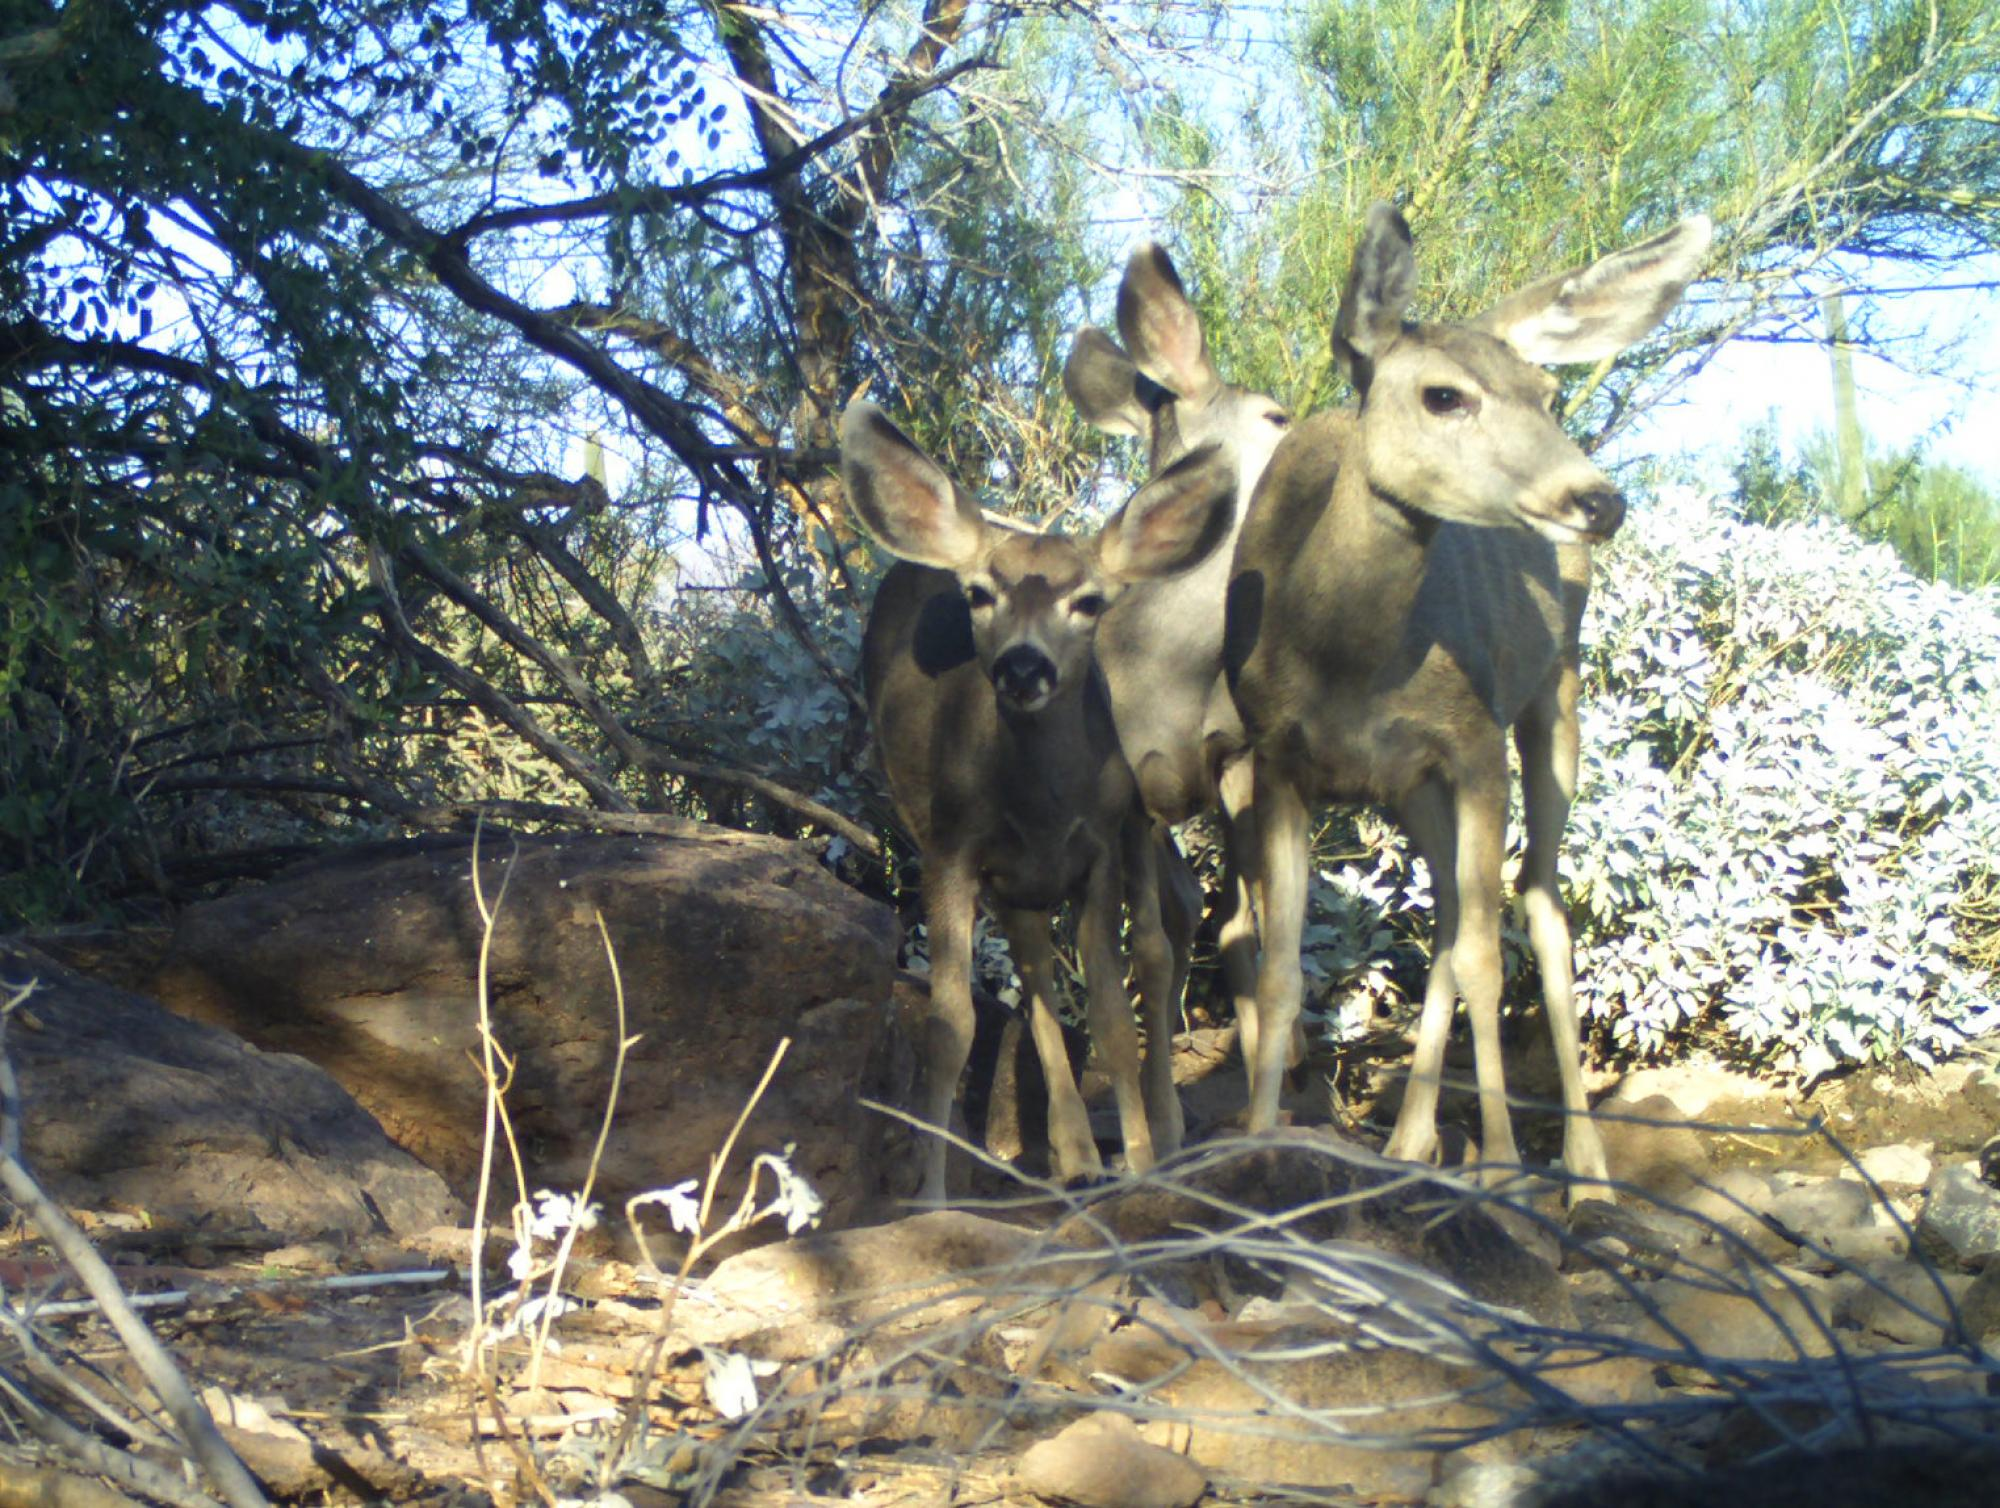 This snapshot of mule deer was taken by a trail camera put in place as part of the student-led monitoring study.